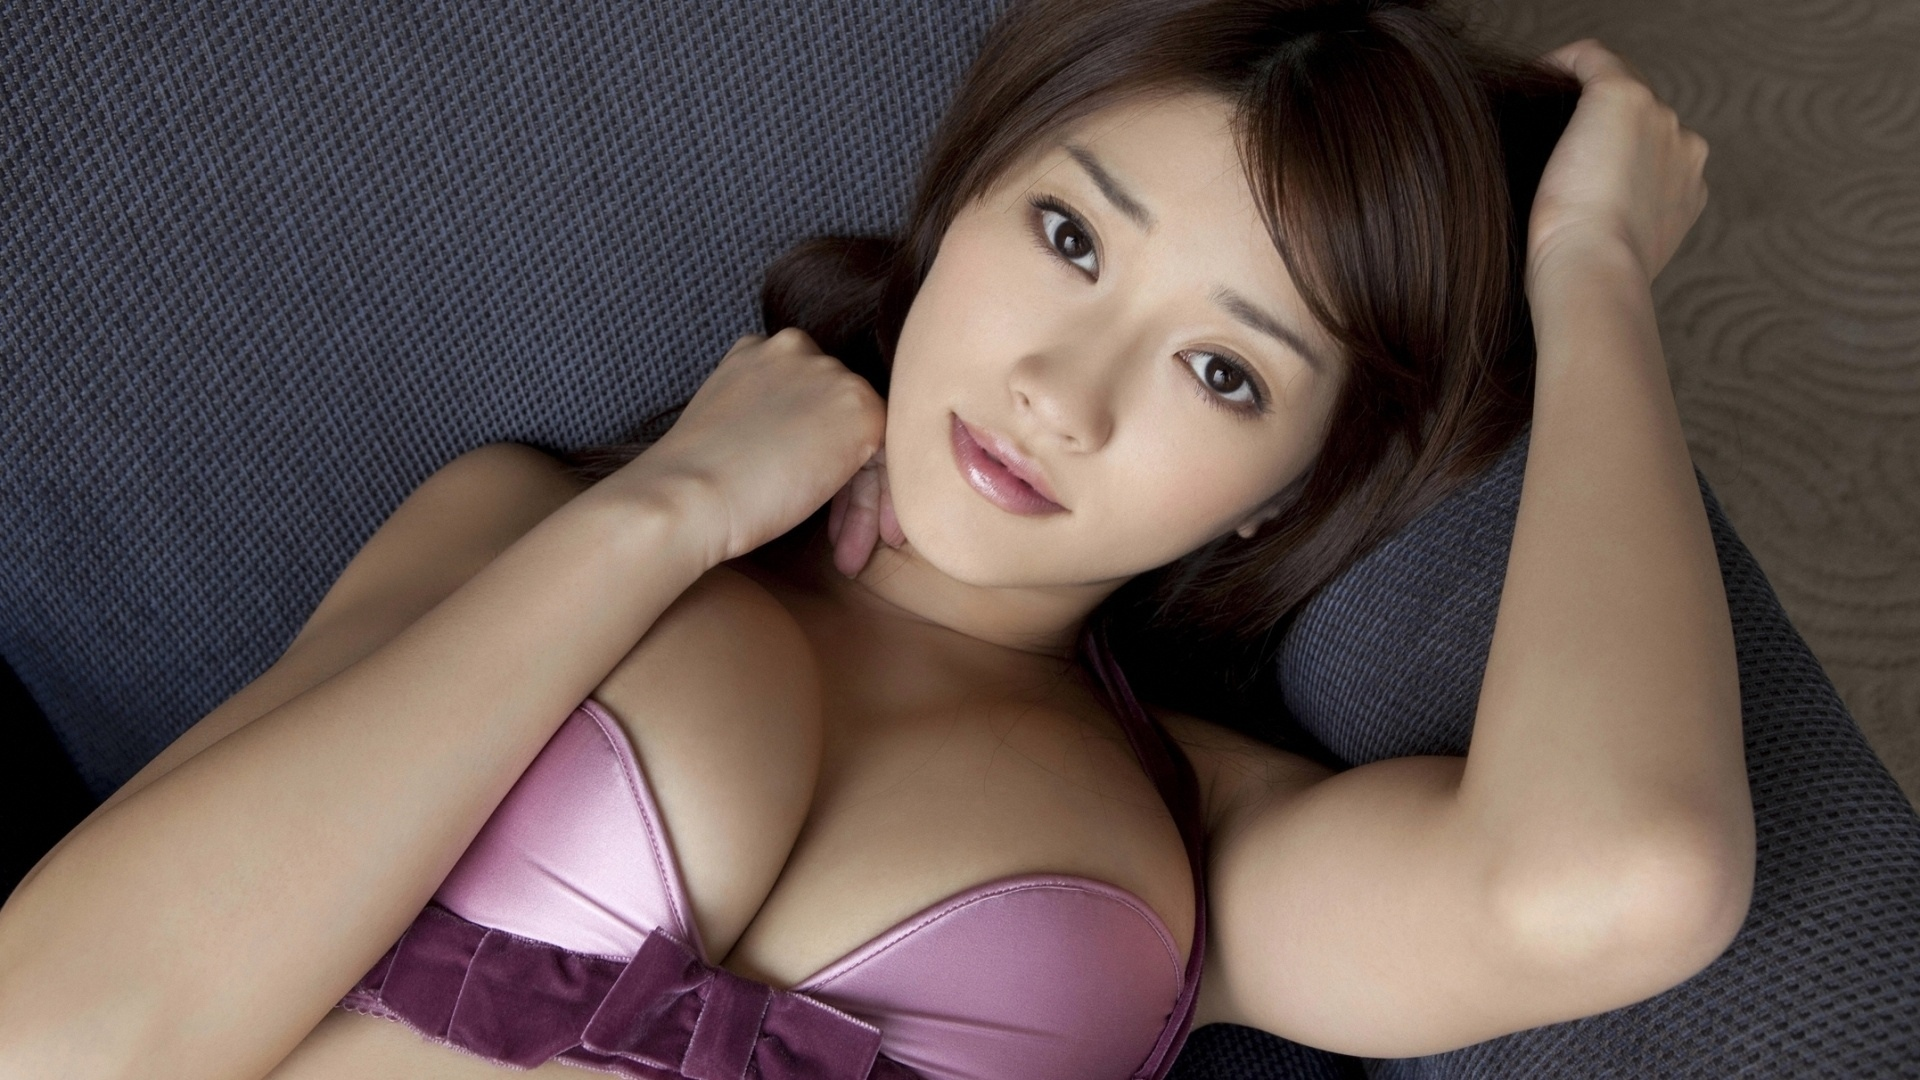 Japan hot picture, tight tattooed women naked